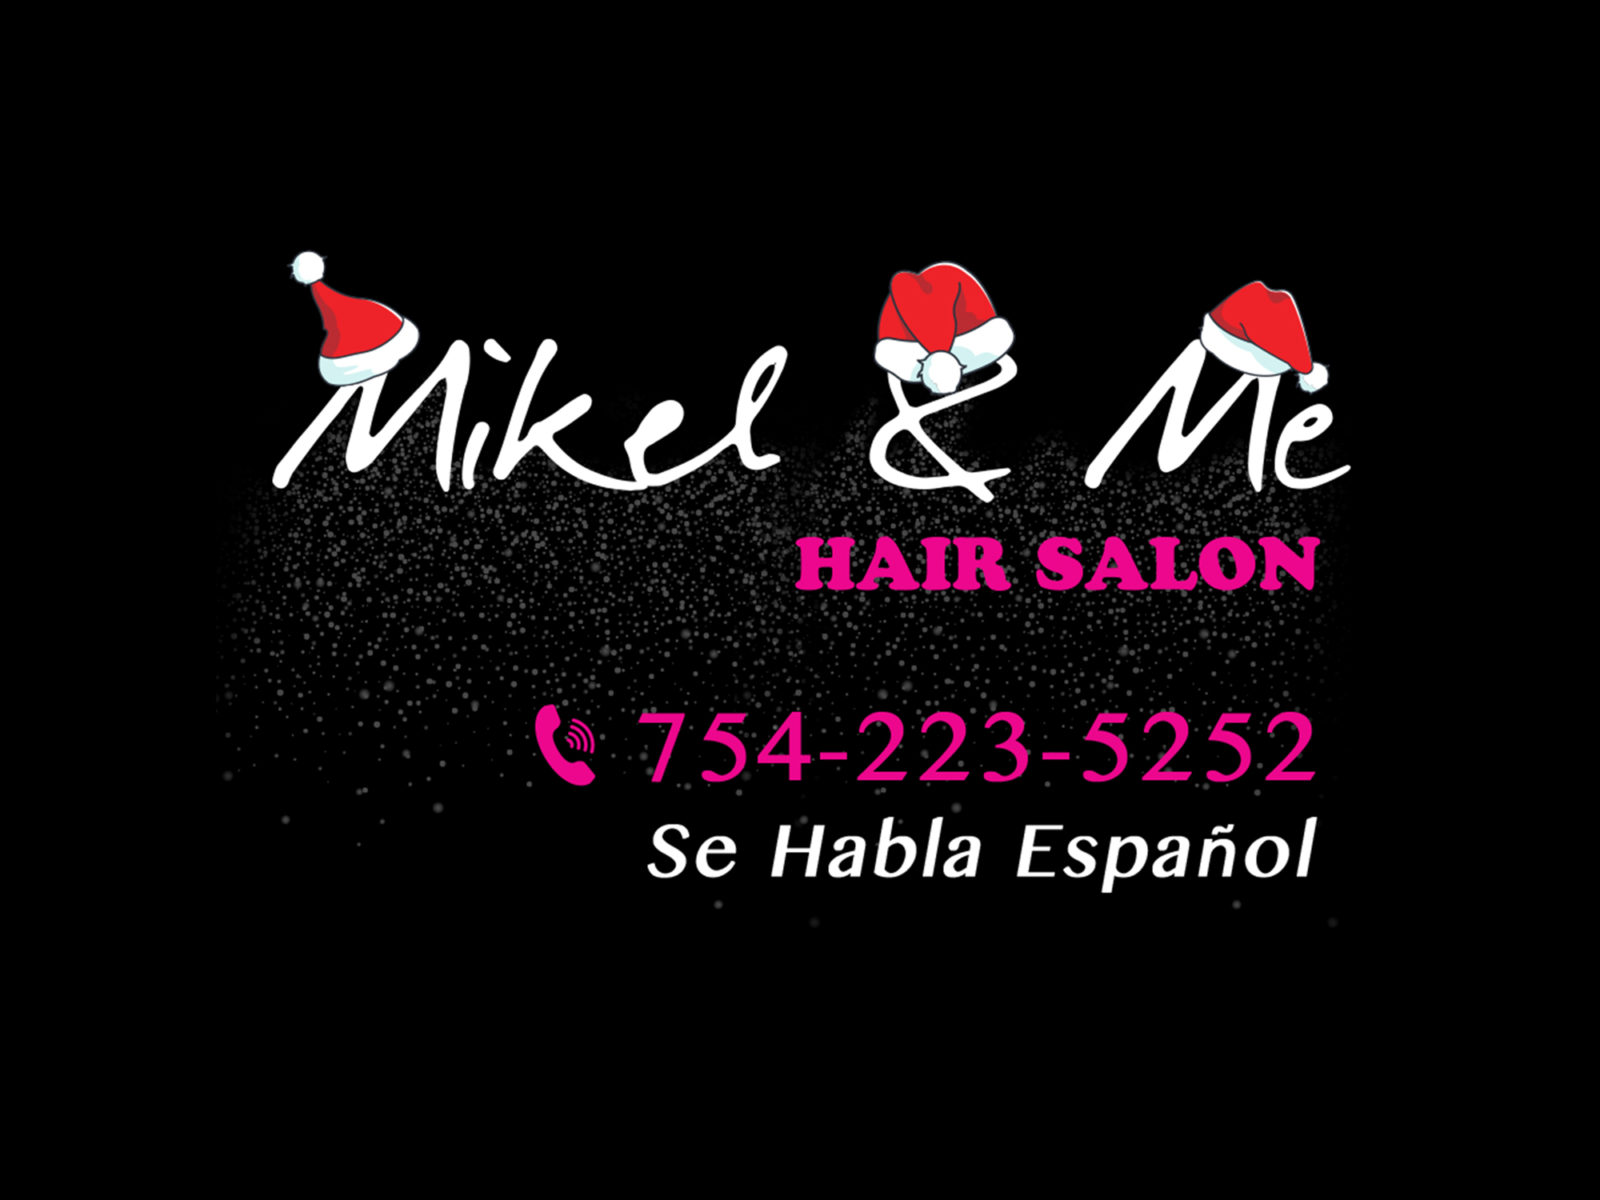 Mikel and Me Hair Salon